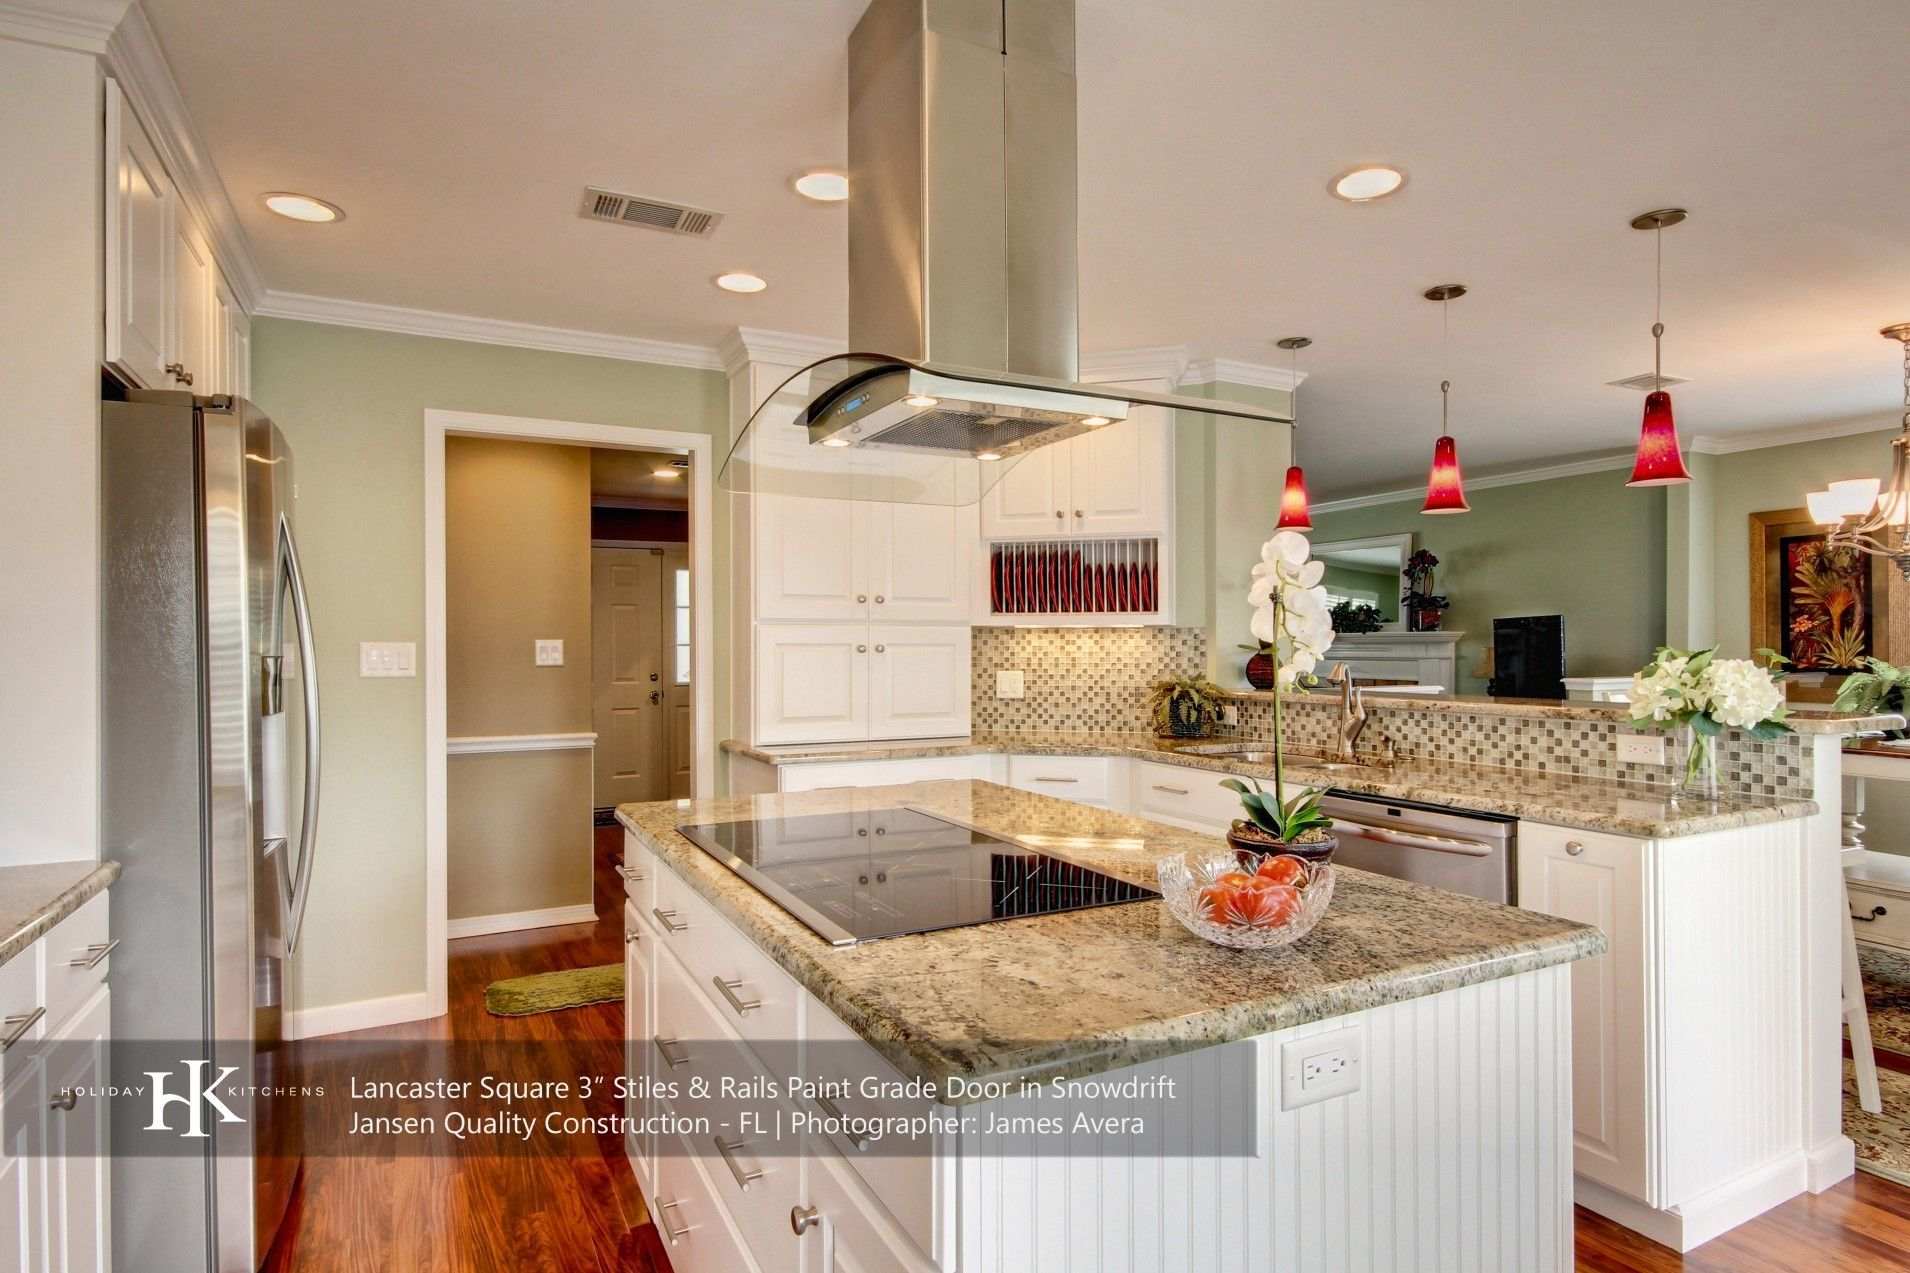 Media Gallery Holiday Kitchen Kitchen Design Trends Kitchen Design